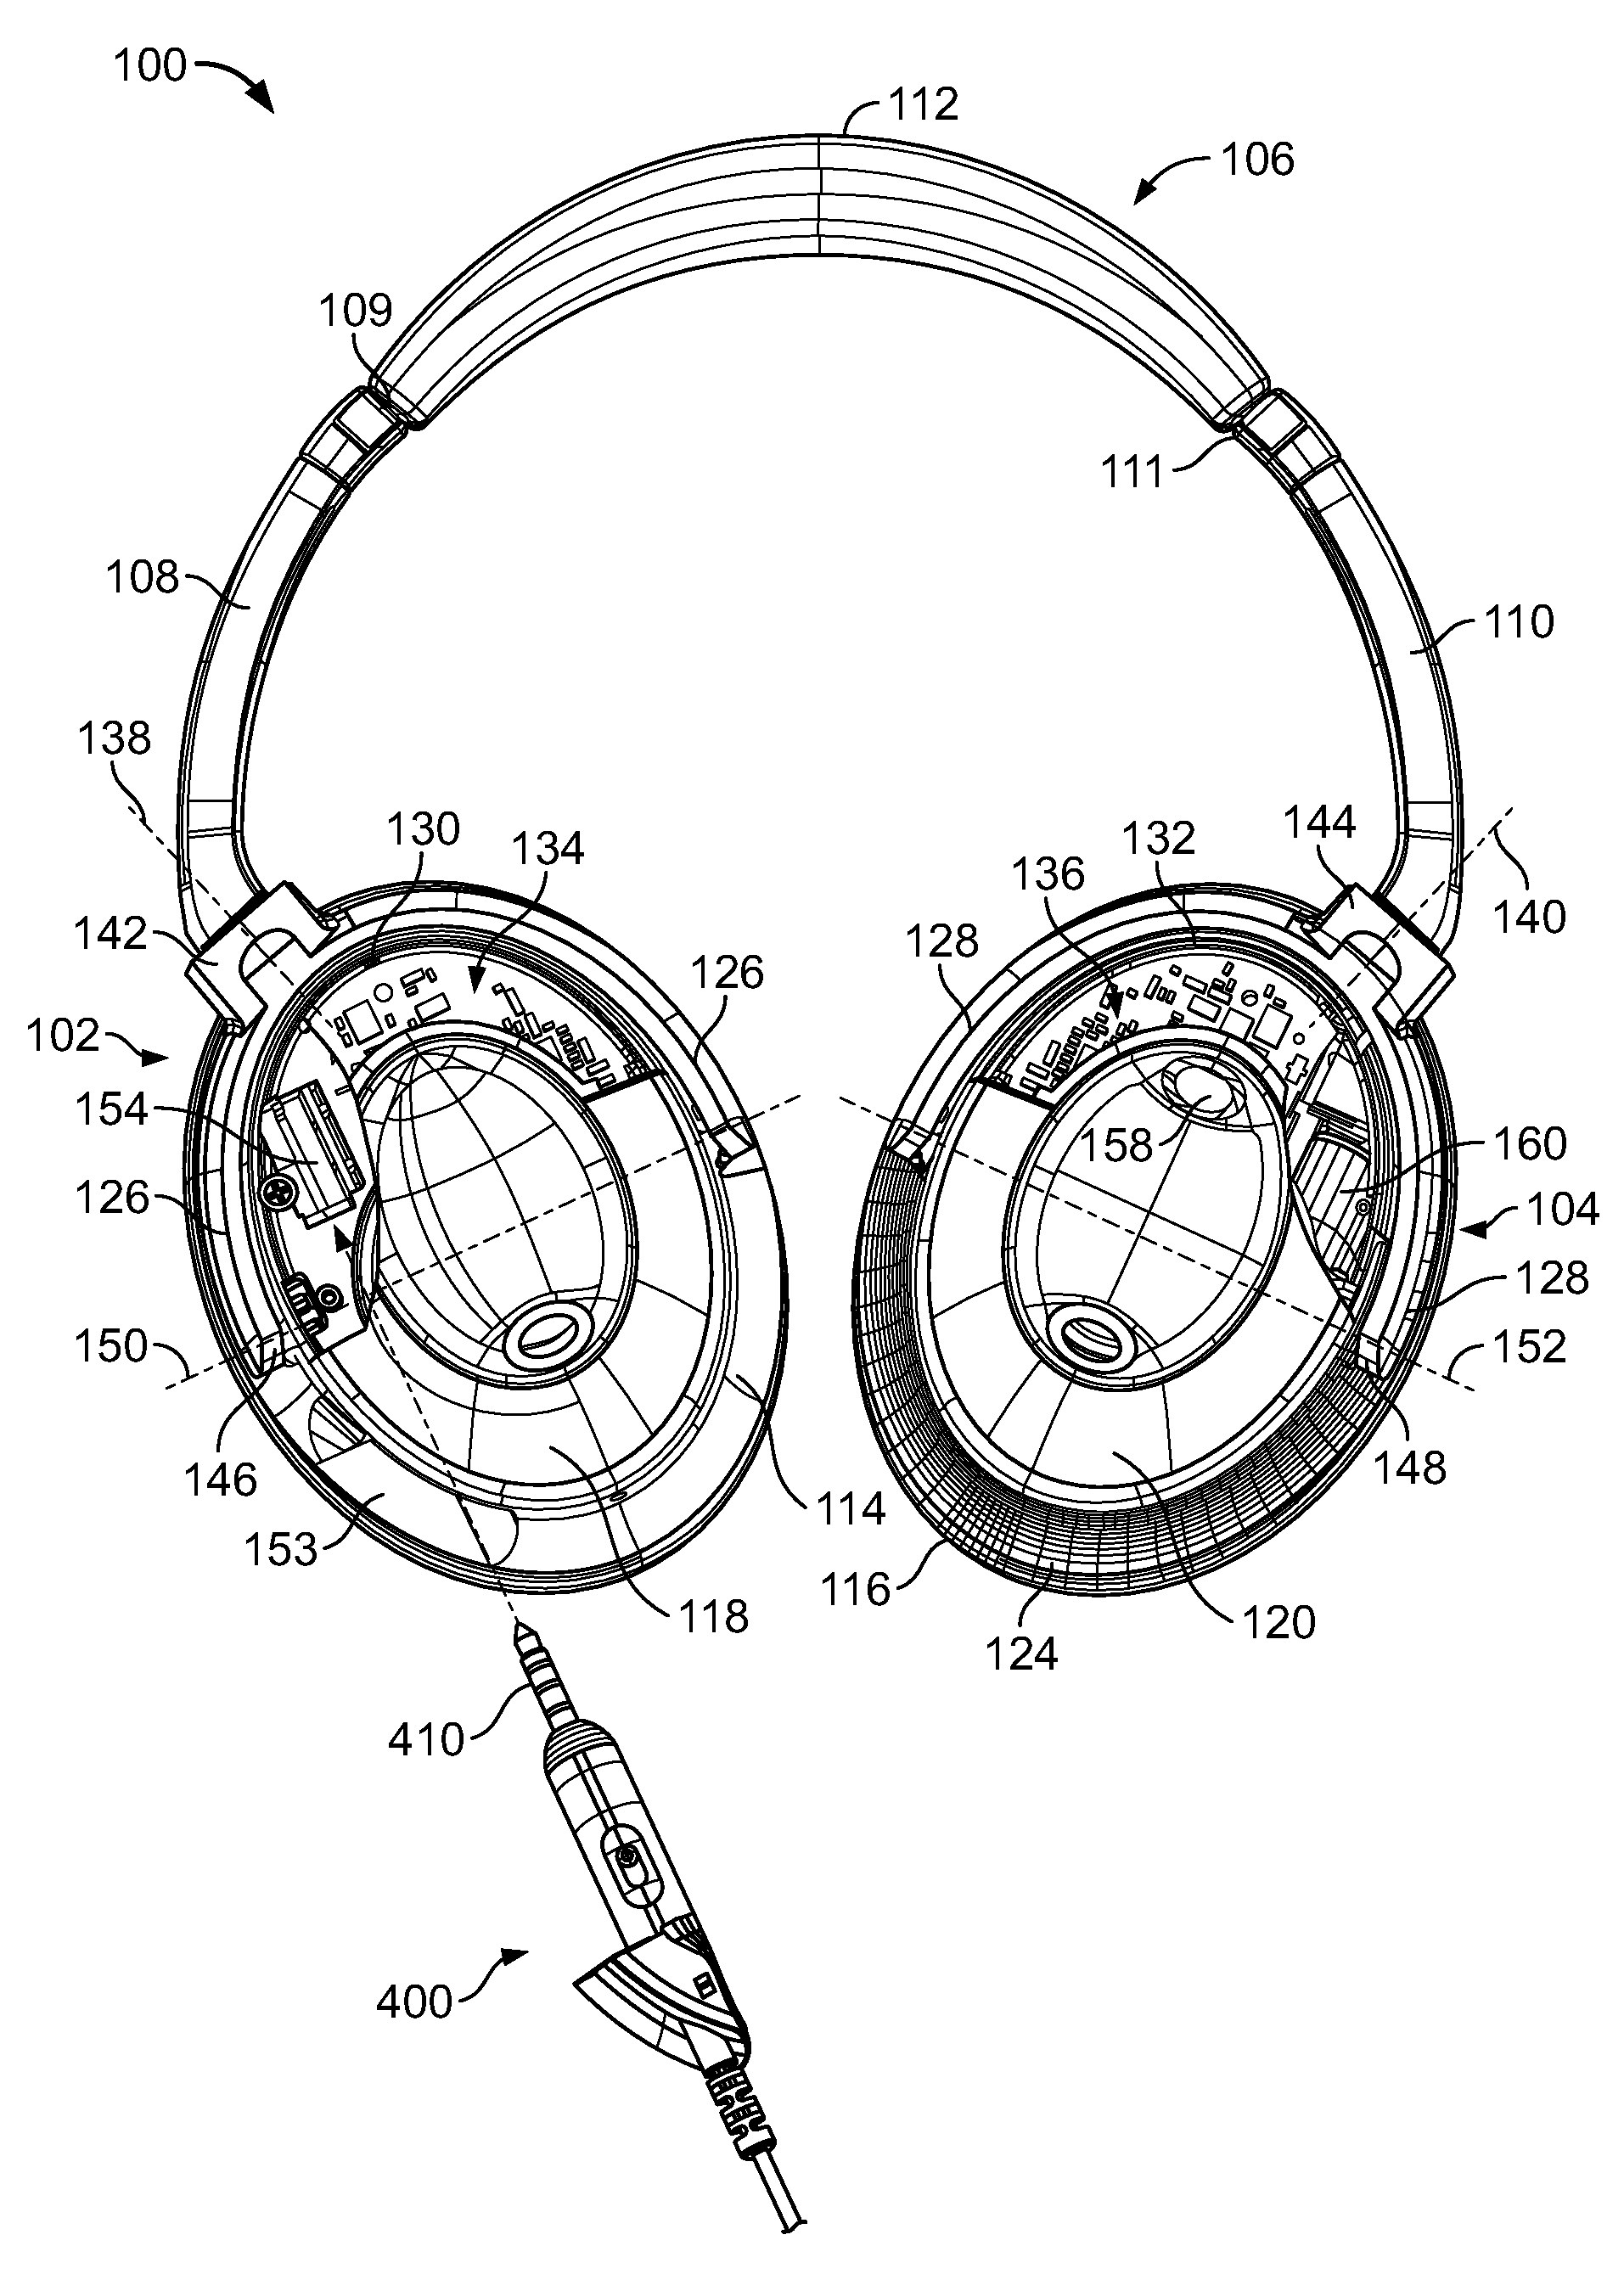 Ipod Headphone Wiring Diagram Library Iphone Jack Us08031878 20111004 D00000 Patent Us8031878 Electronic Interfacing With A Head Mounted Bose